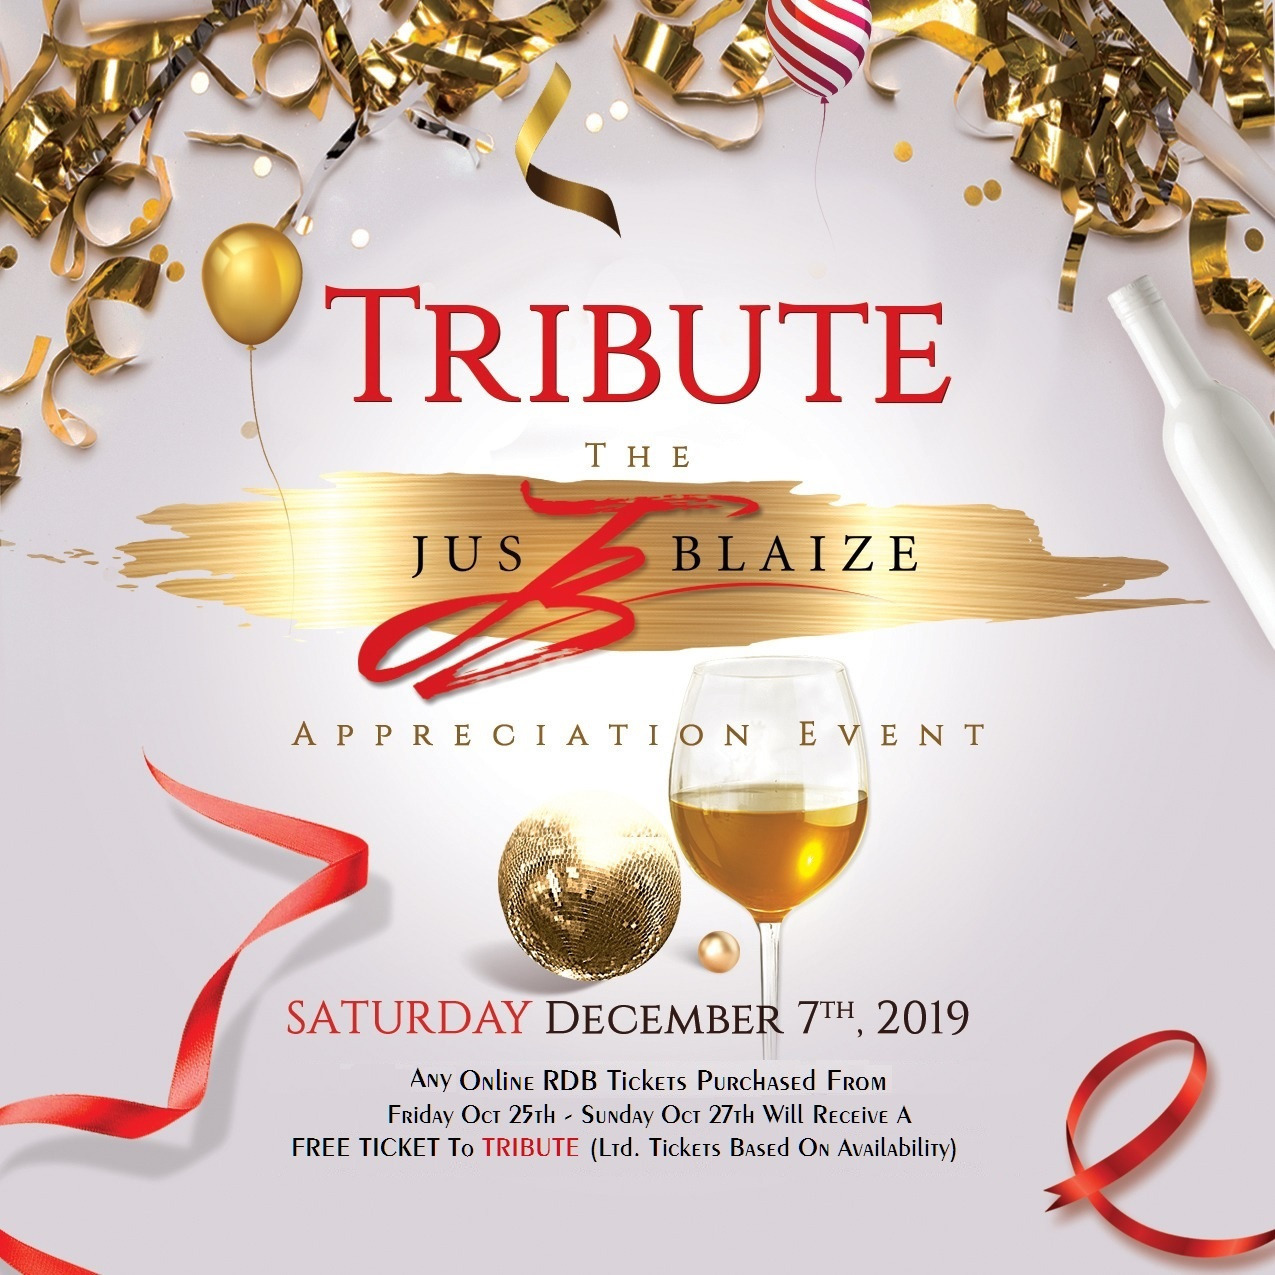 TRIBUTE - The JUS BLAIZE Appreciation Event